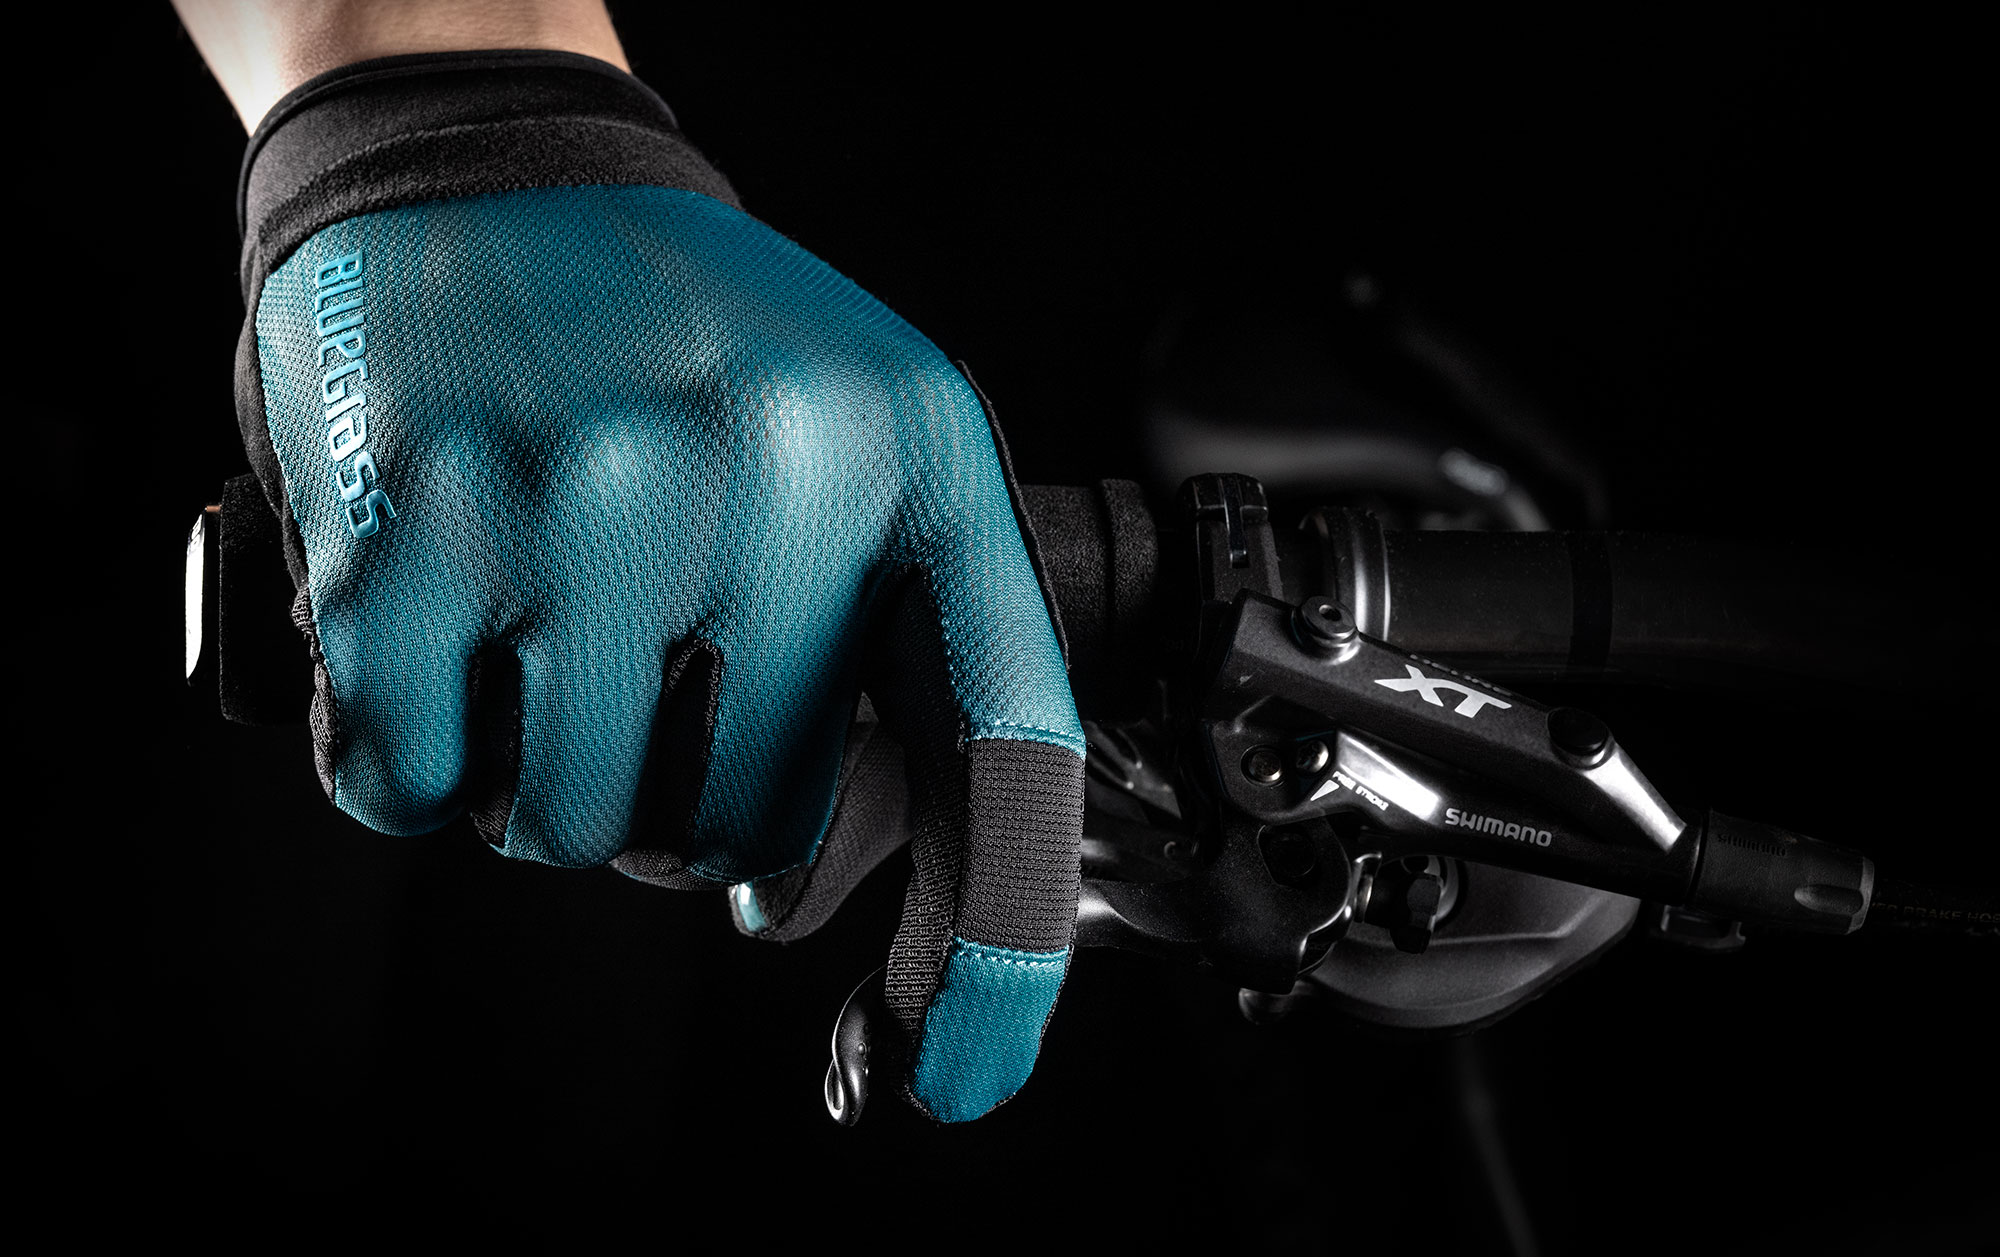 Bluegrass React MTB Glove for DH, Freeride, Trail, and E-MTB